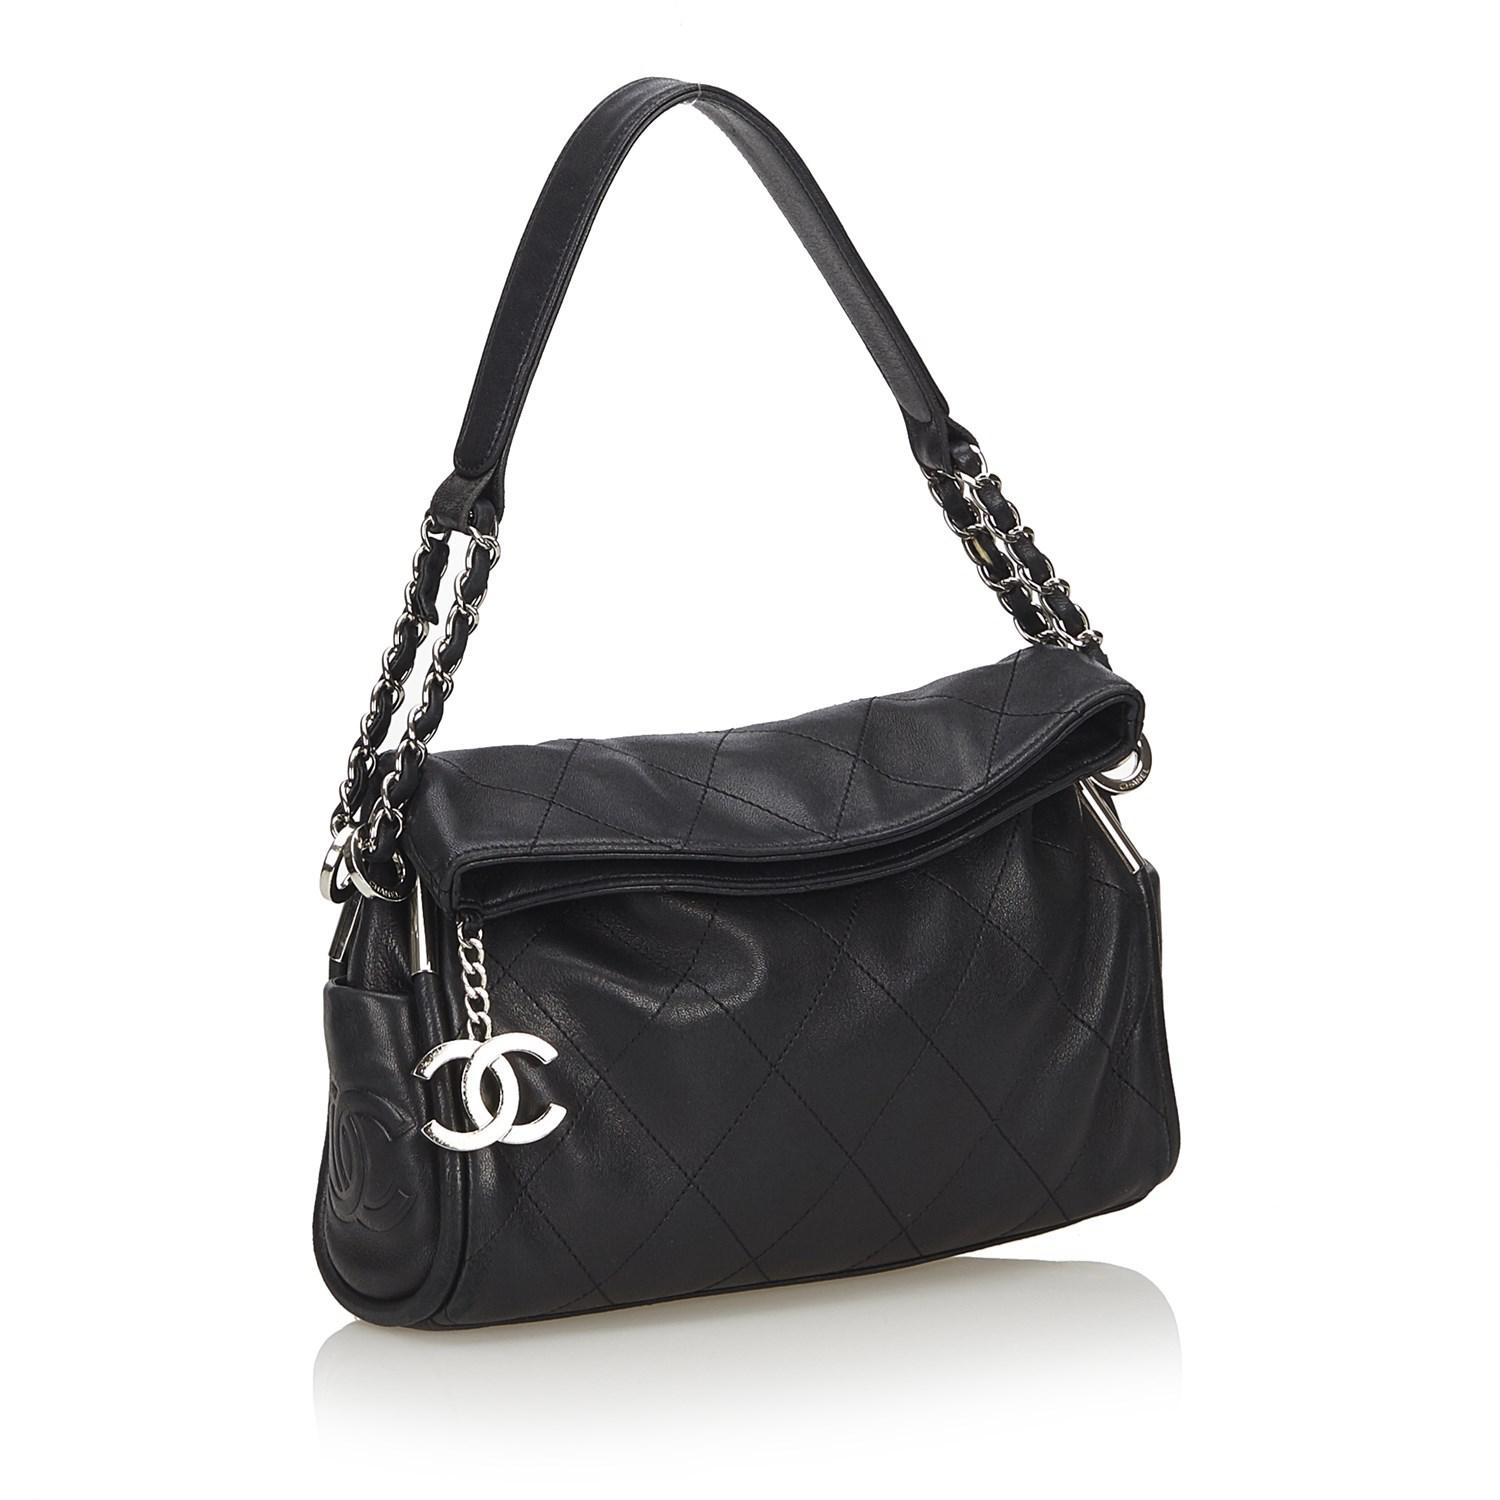 Lyst - Chanel Matelasse Lambskin Shoulder Bag in Black e7a15b17f8